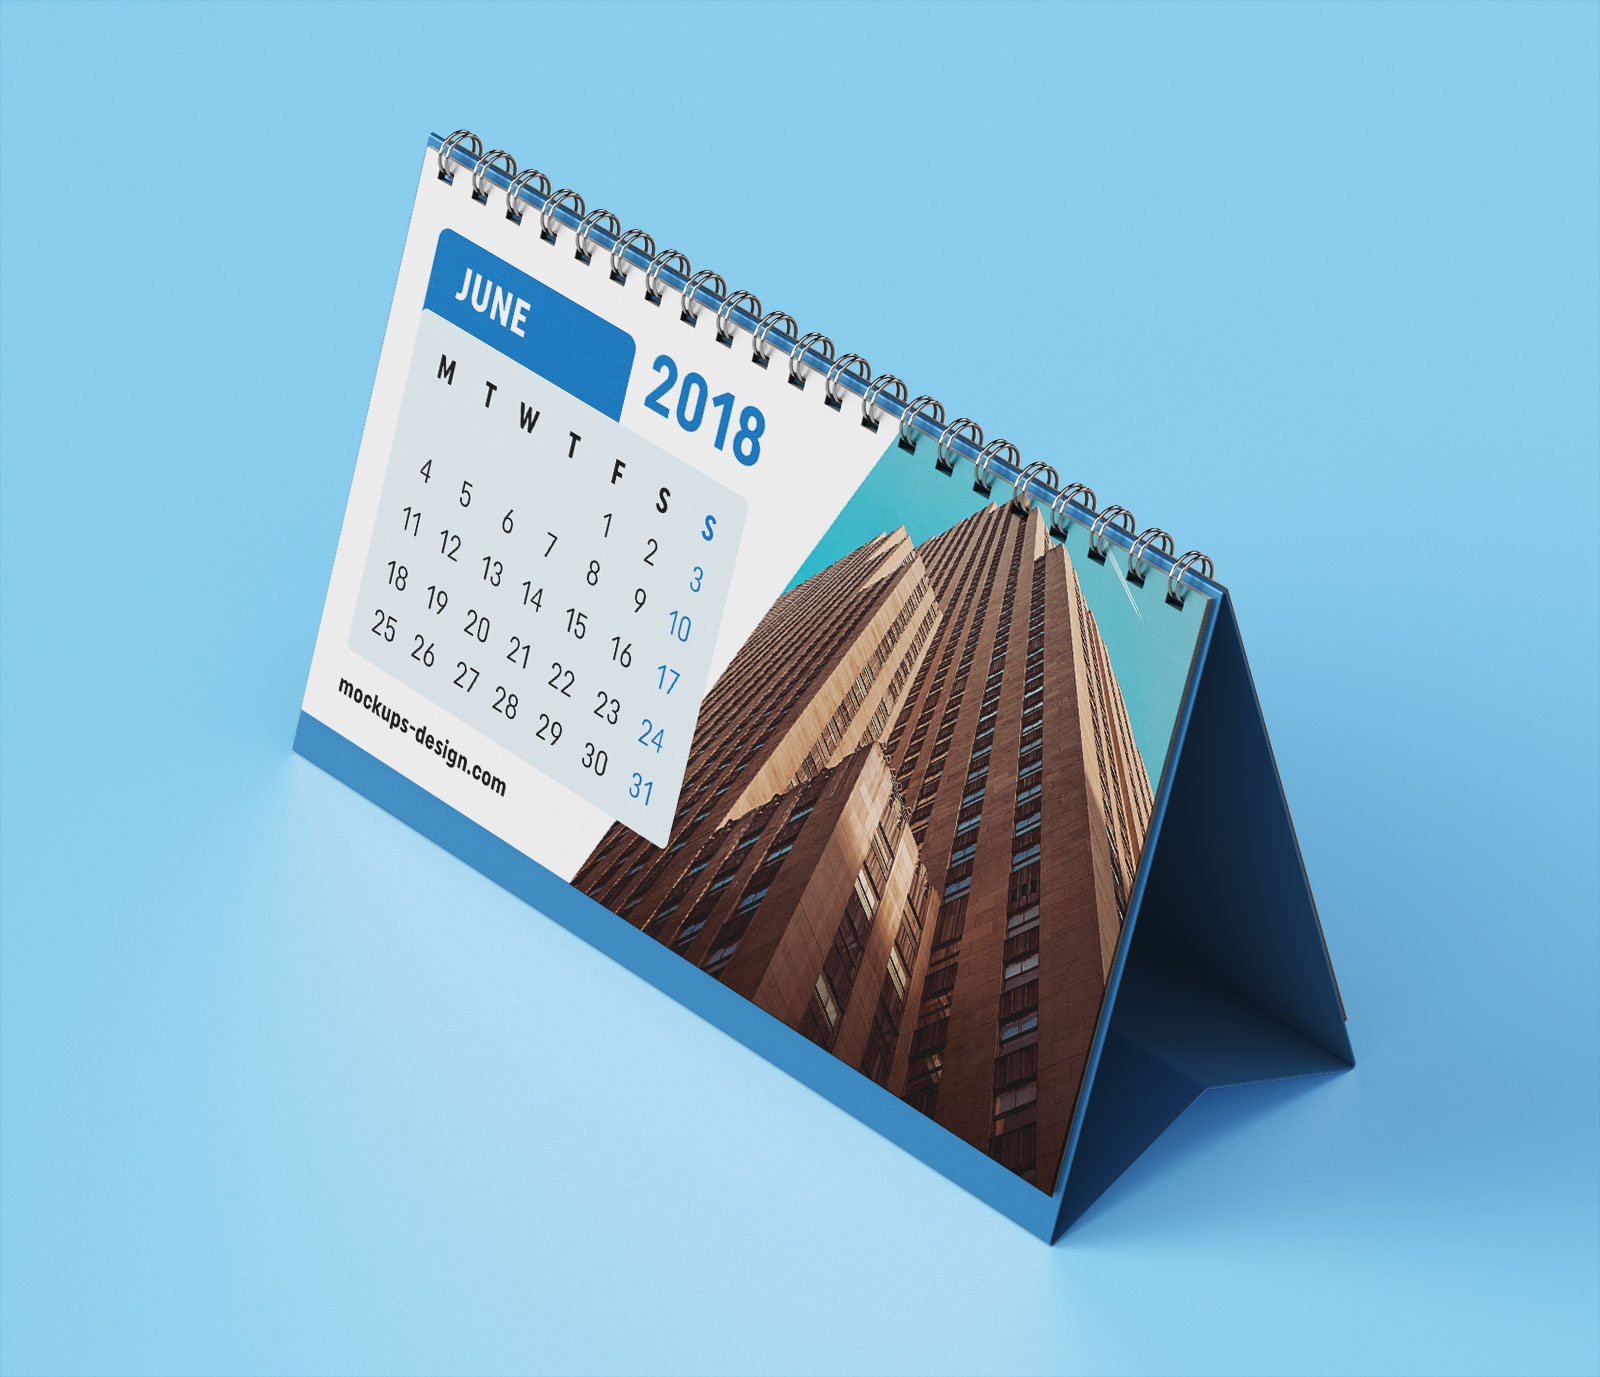 Table Calendar Mockup : Free premium desk table calendar mockup psd good mockups